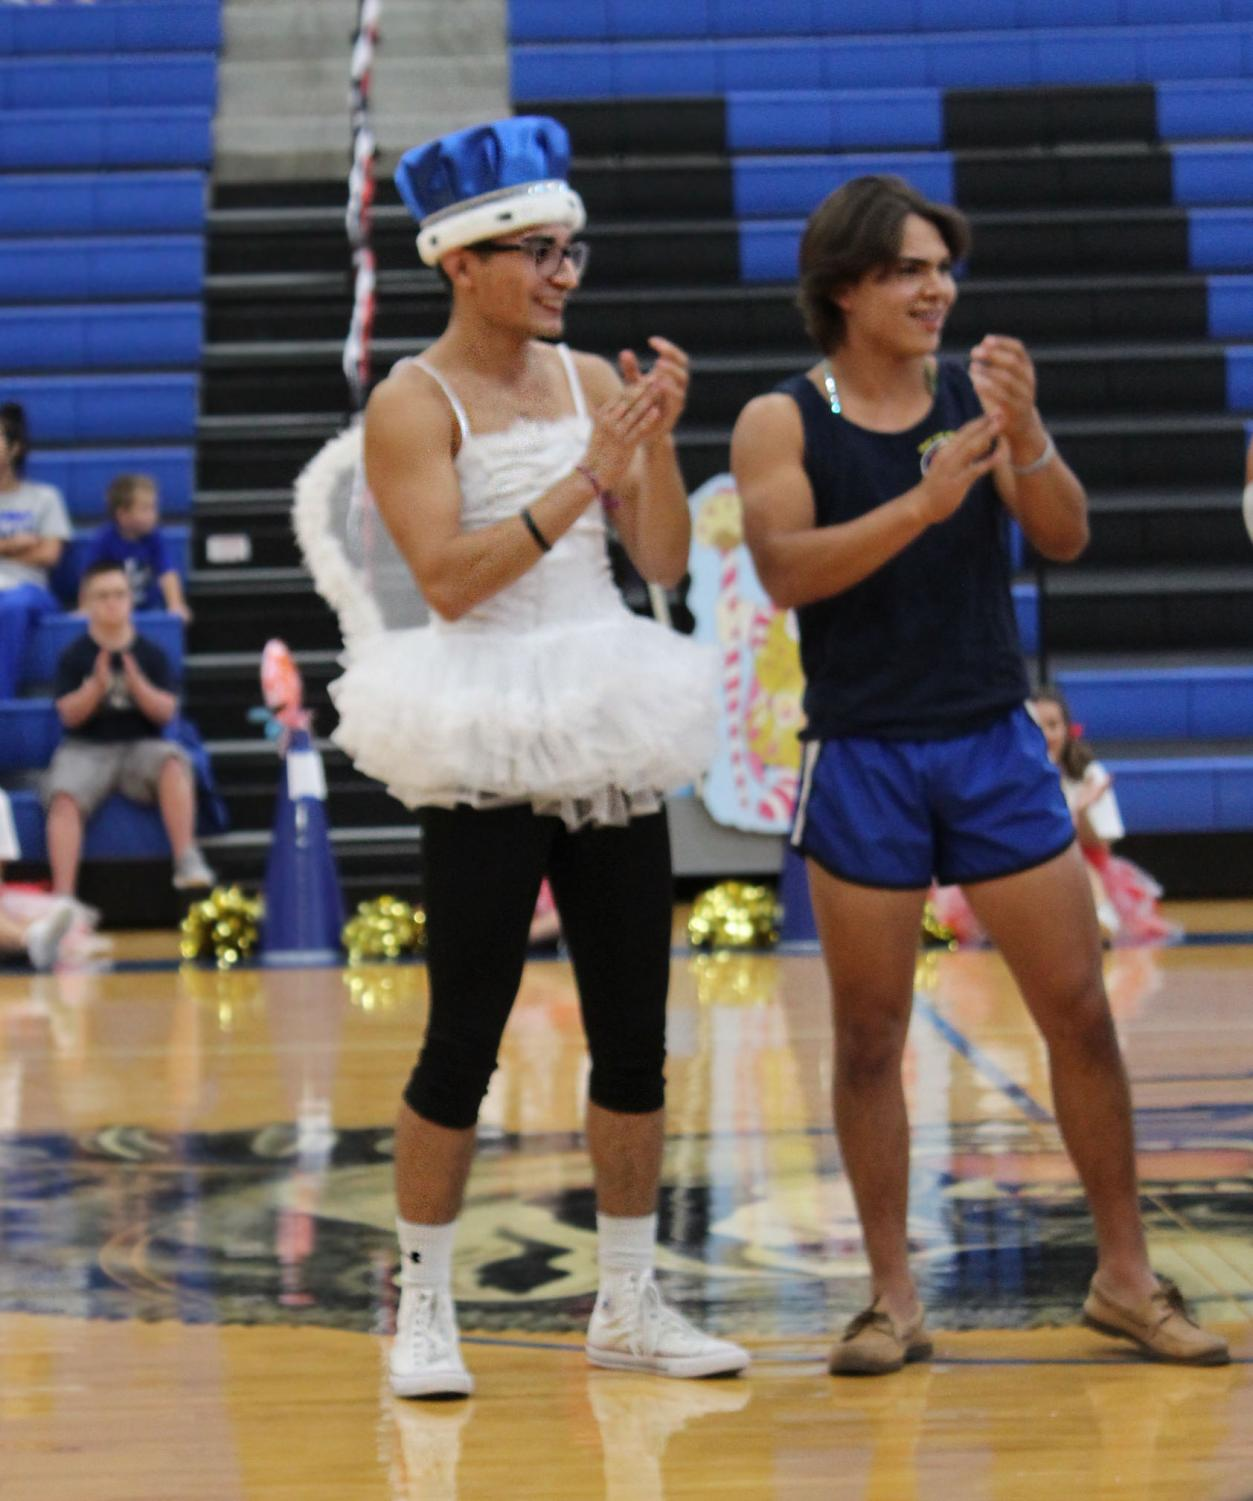 Eric Flores celebrates winning Homecoming King at the end of the pep rally. Moments before, he had performed a baton twirling routine for the talent portion of the